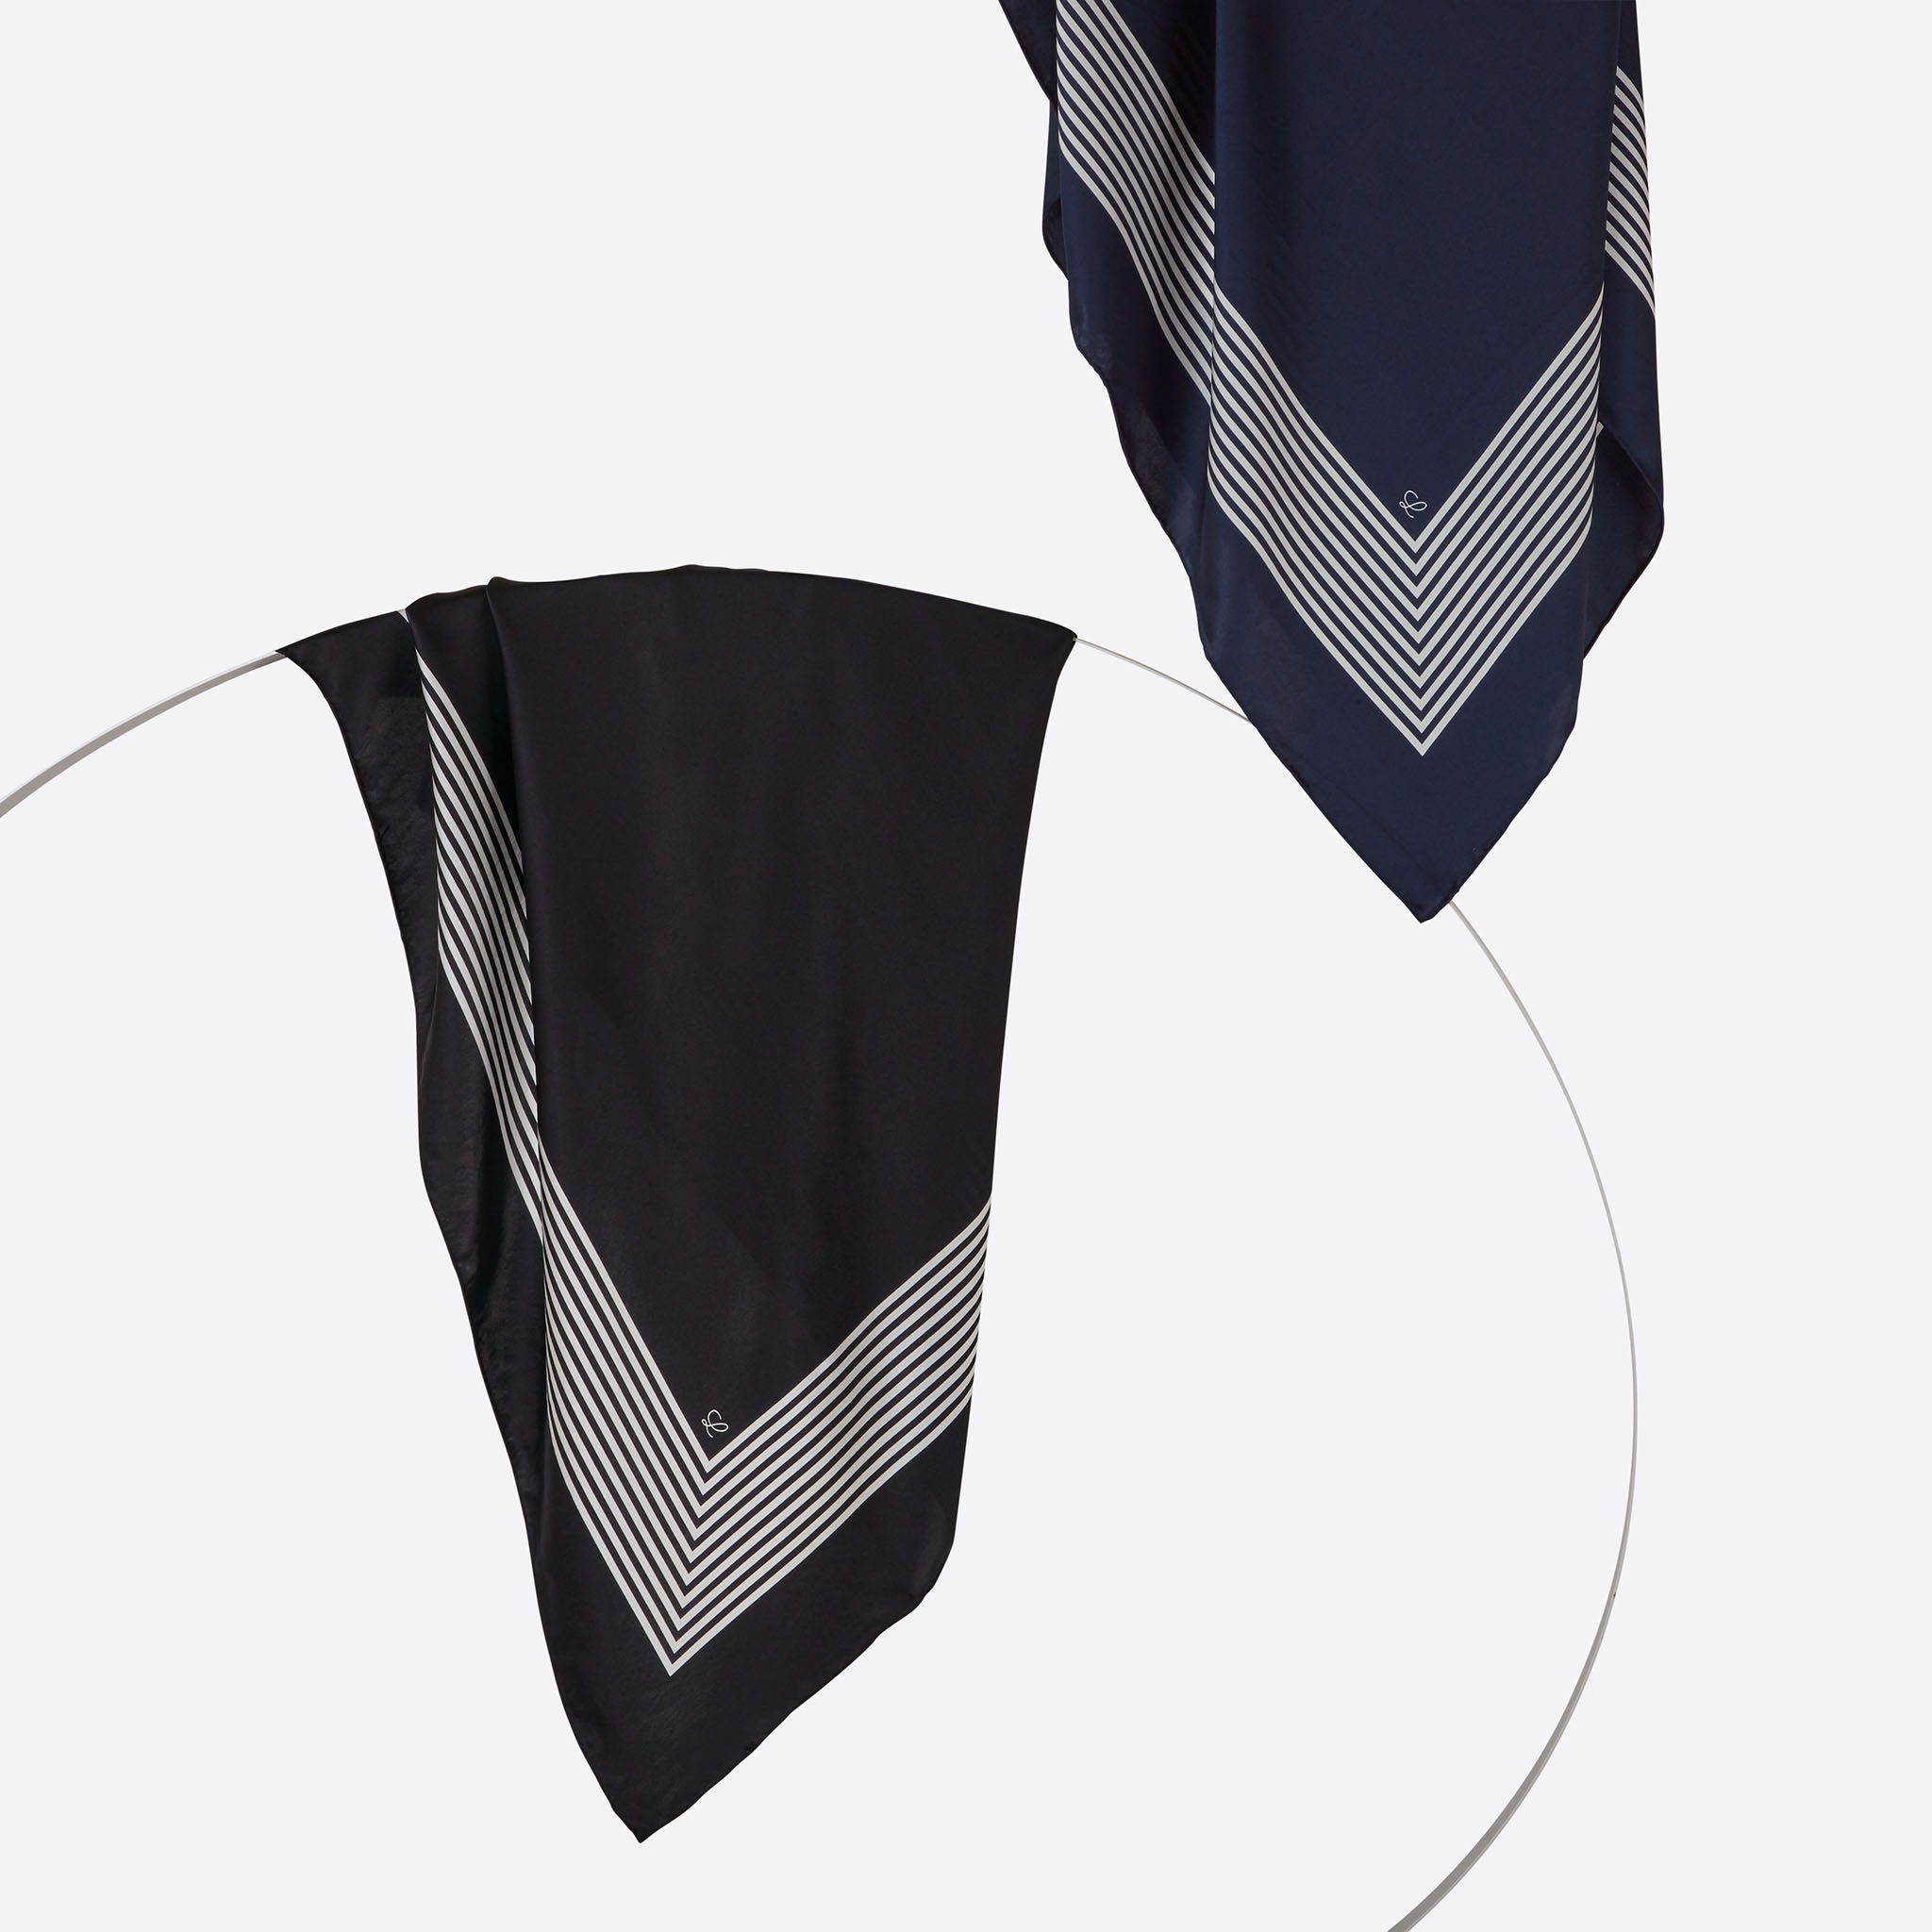 Lalouette black and navy striped square silk scarves